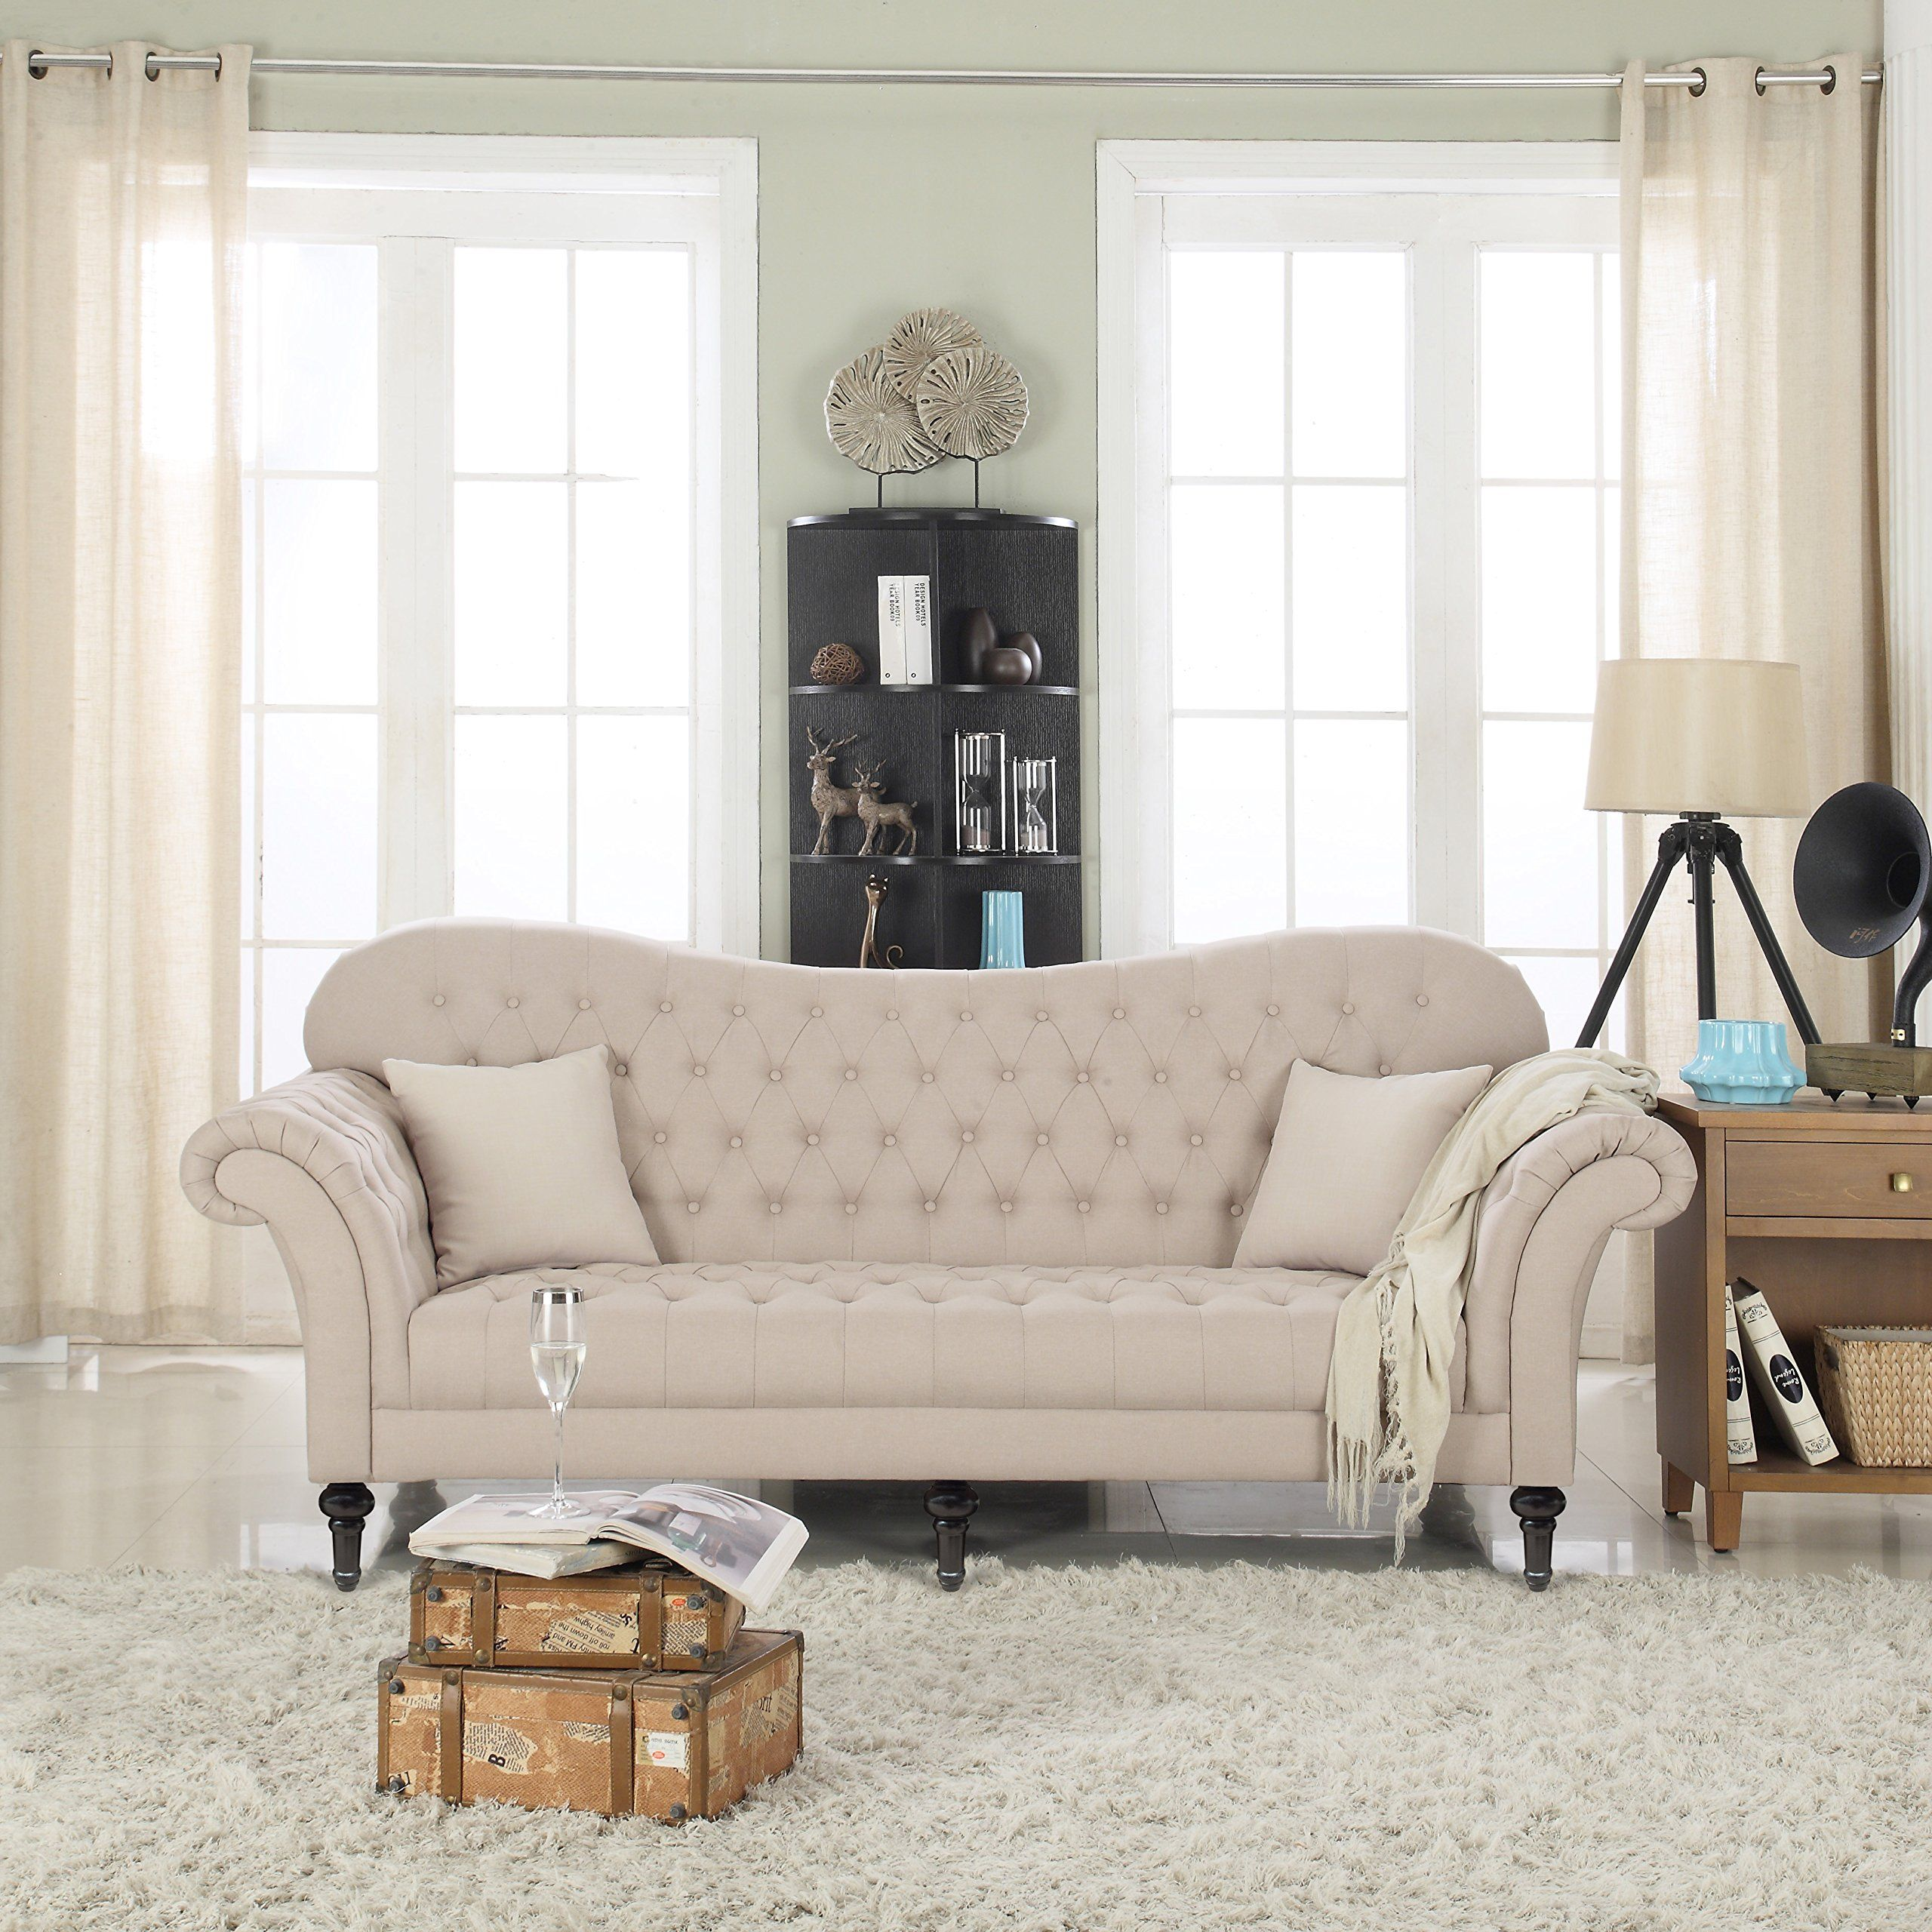 Classic Chesterfield Tufted Linen Fabric Victorian Sofa with Scroll ...